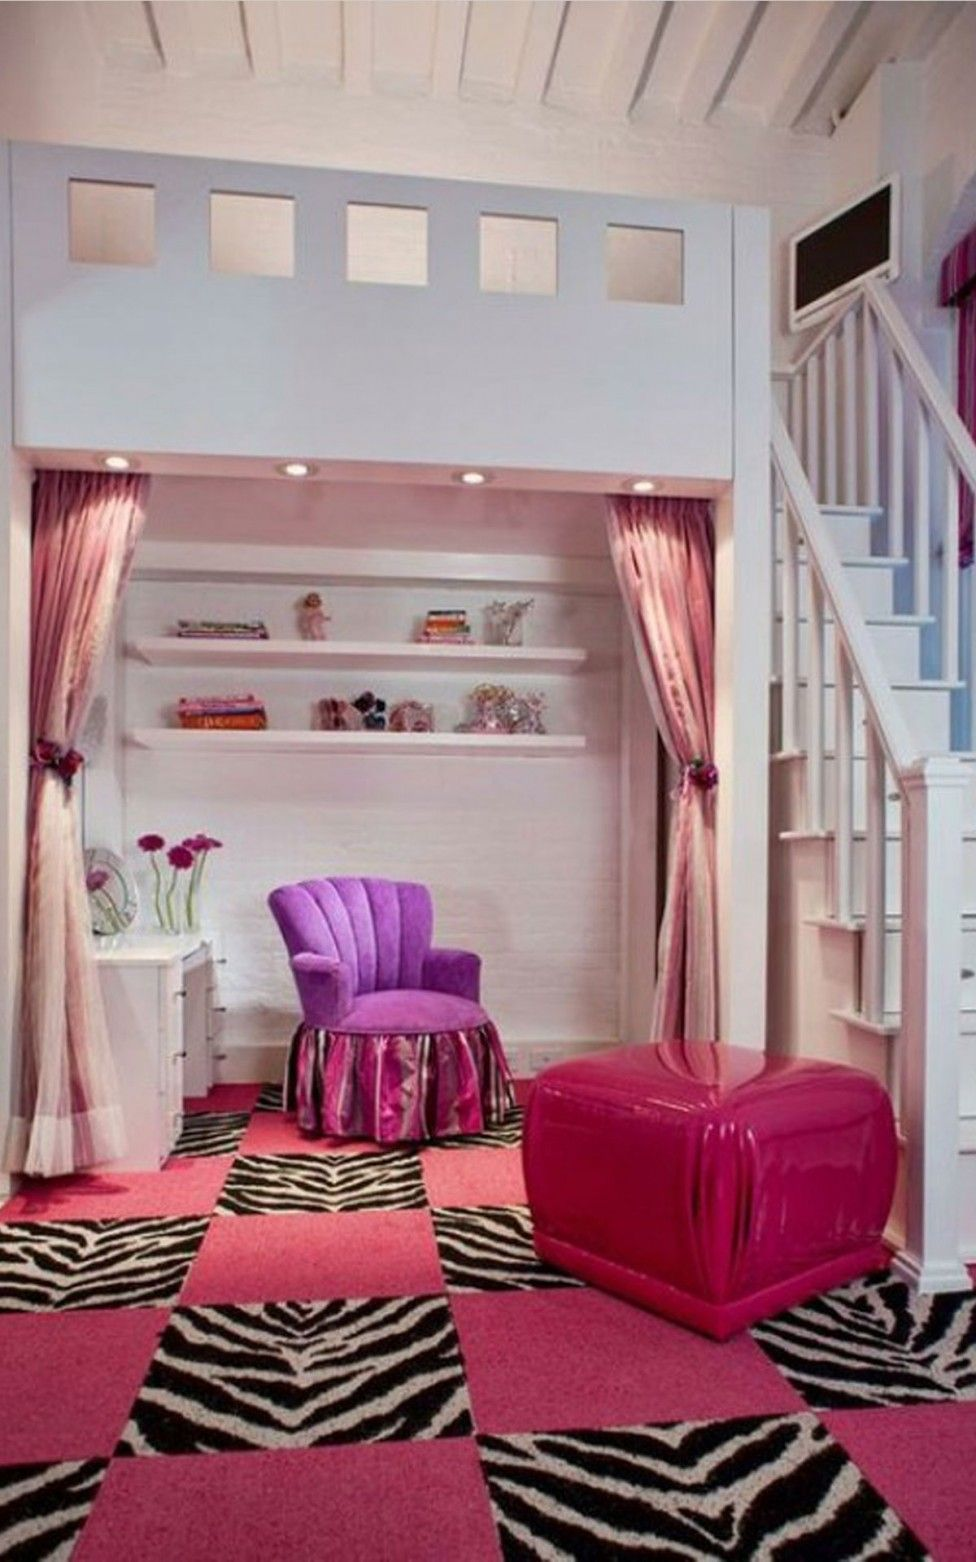 Small room ideas for girls with cute color bedroom 22 for Cute bedroom decorating ideas for girls